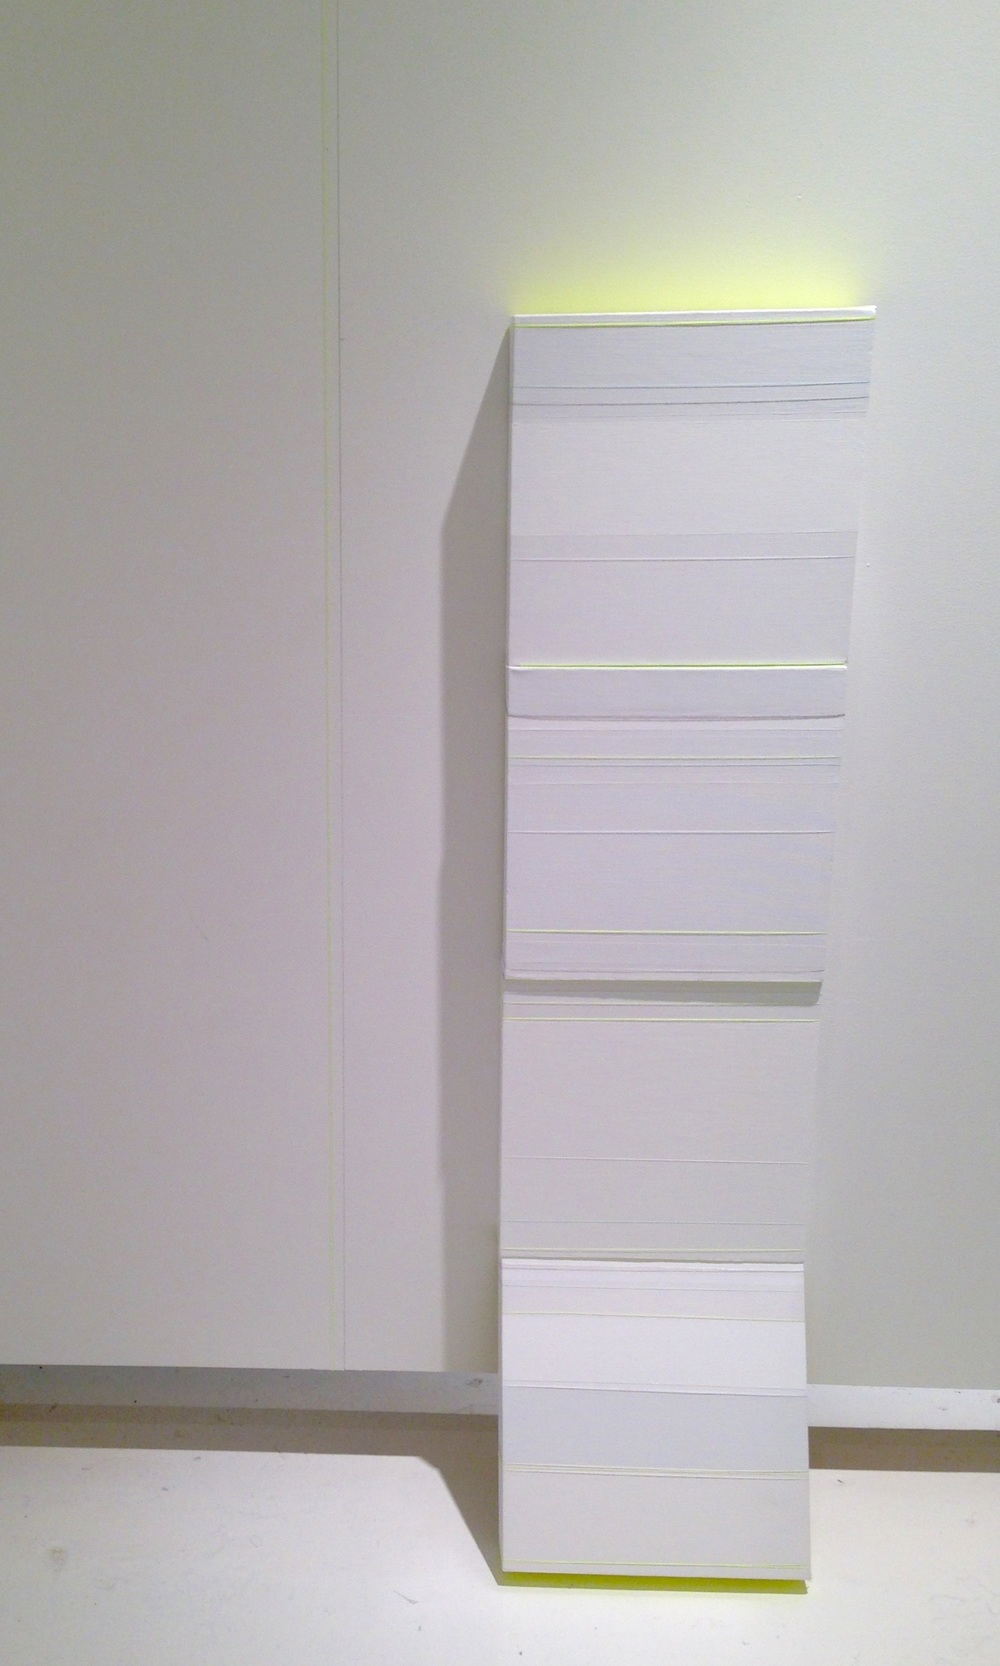 untitled canvas, wood, paint, thread  48 x 12 x 2 in 2014